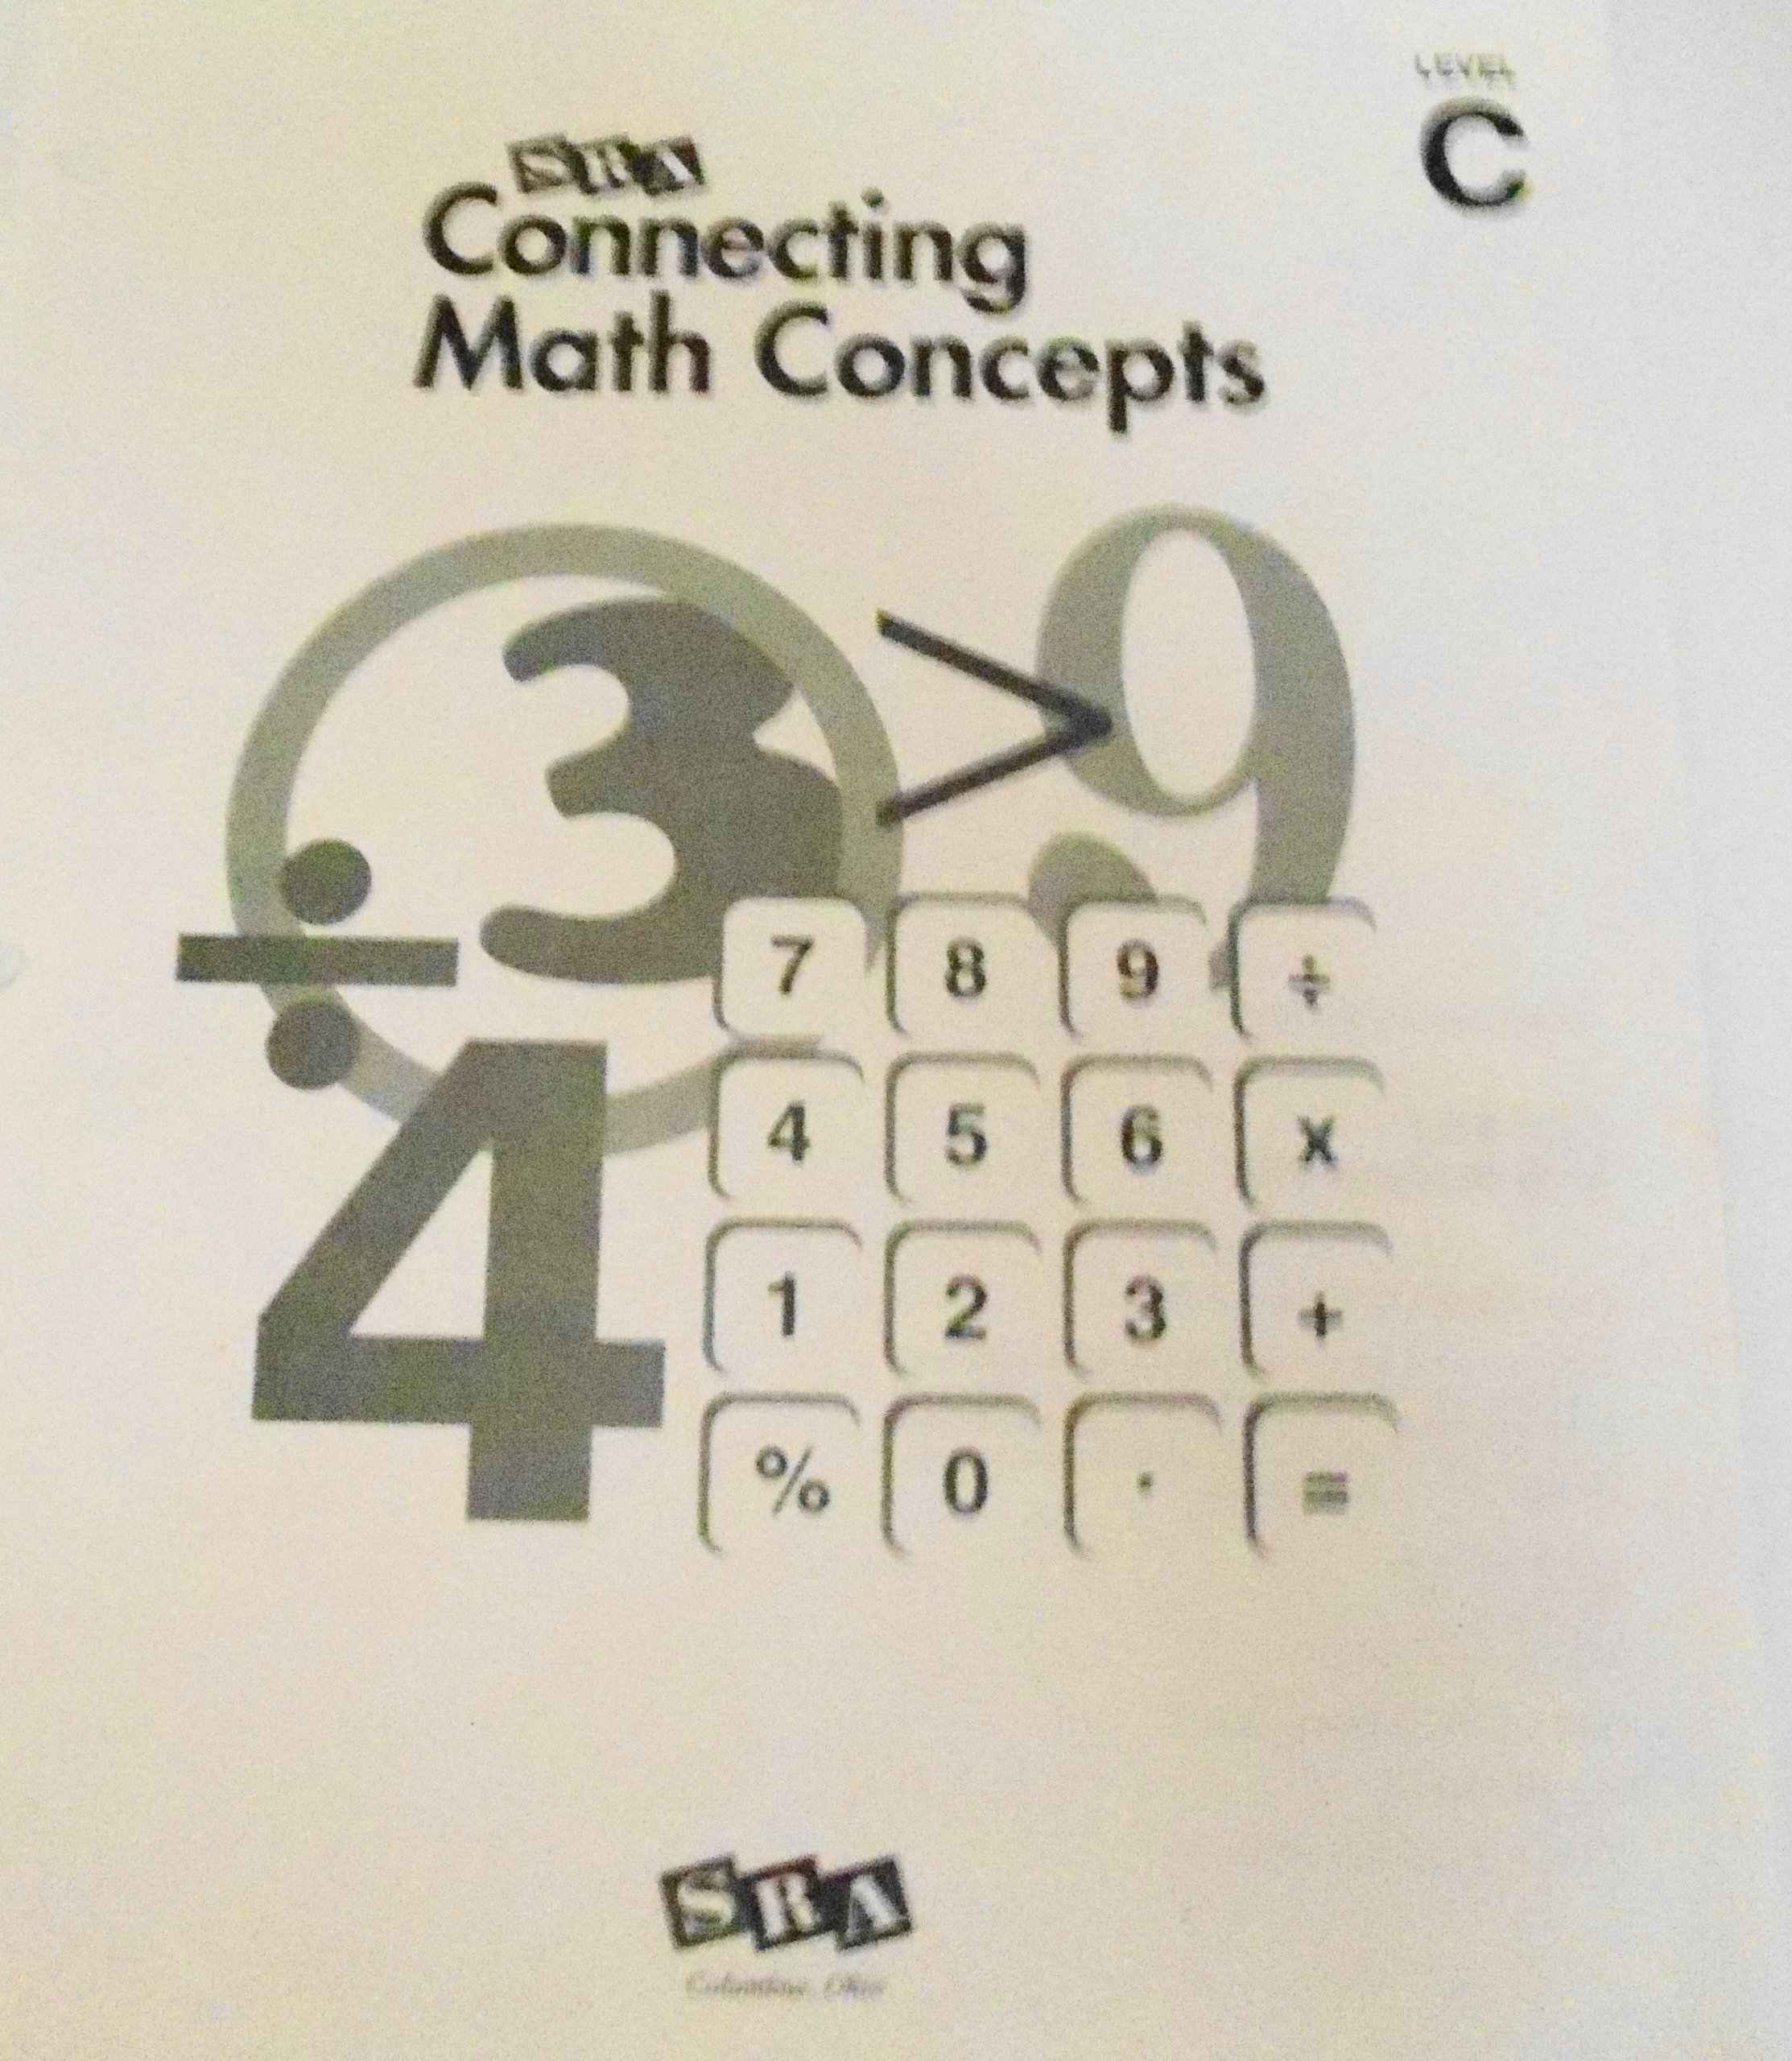 Connecting Math Concepts Math Fact Worksheets, Level C